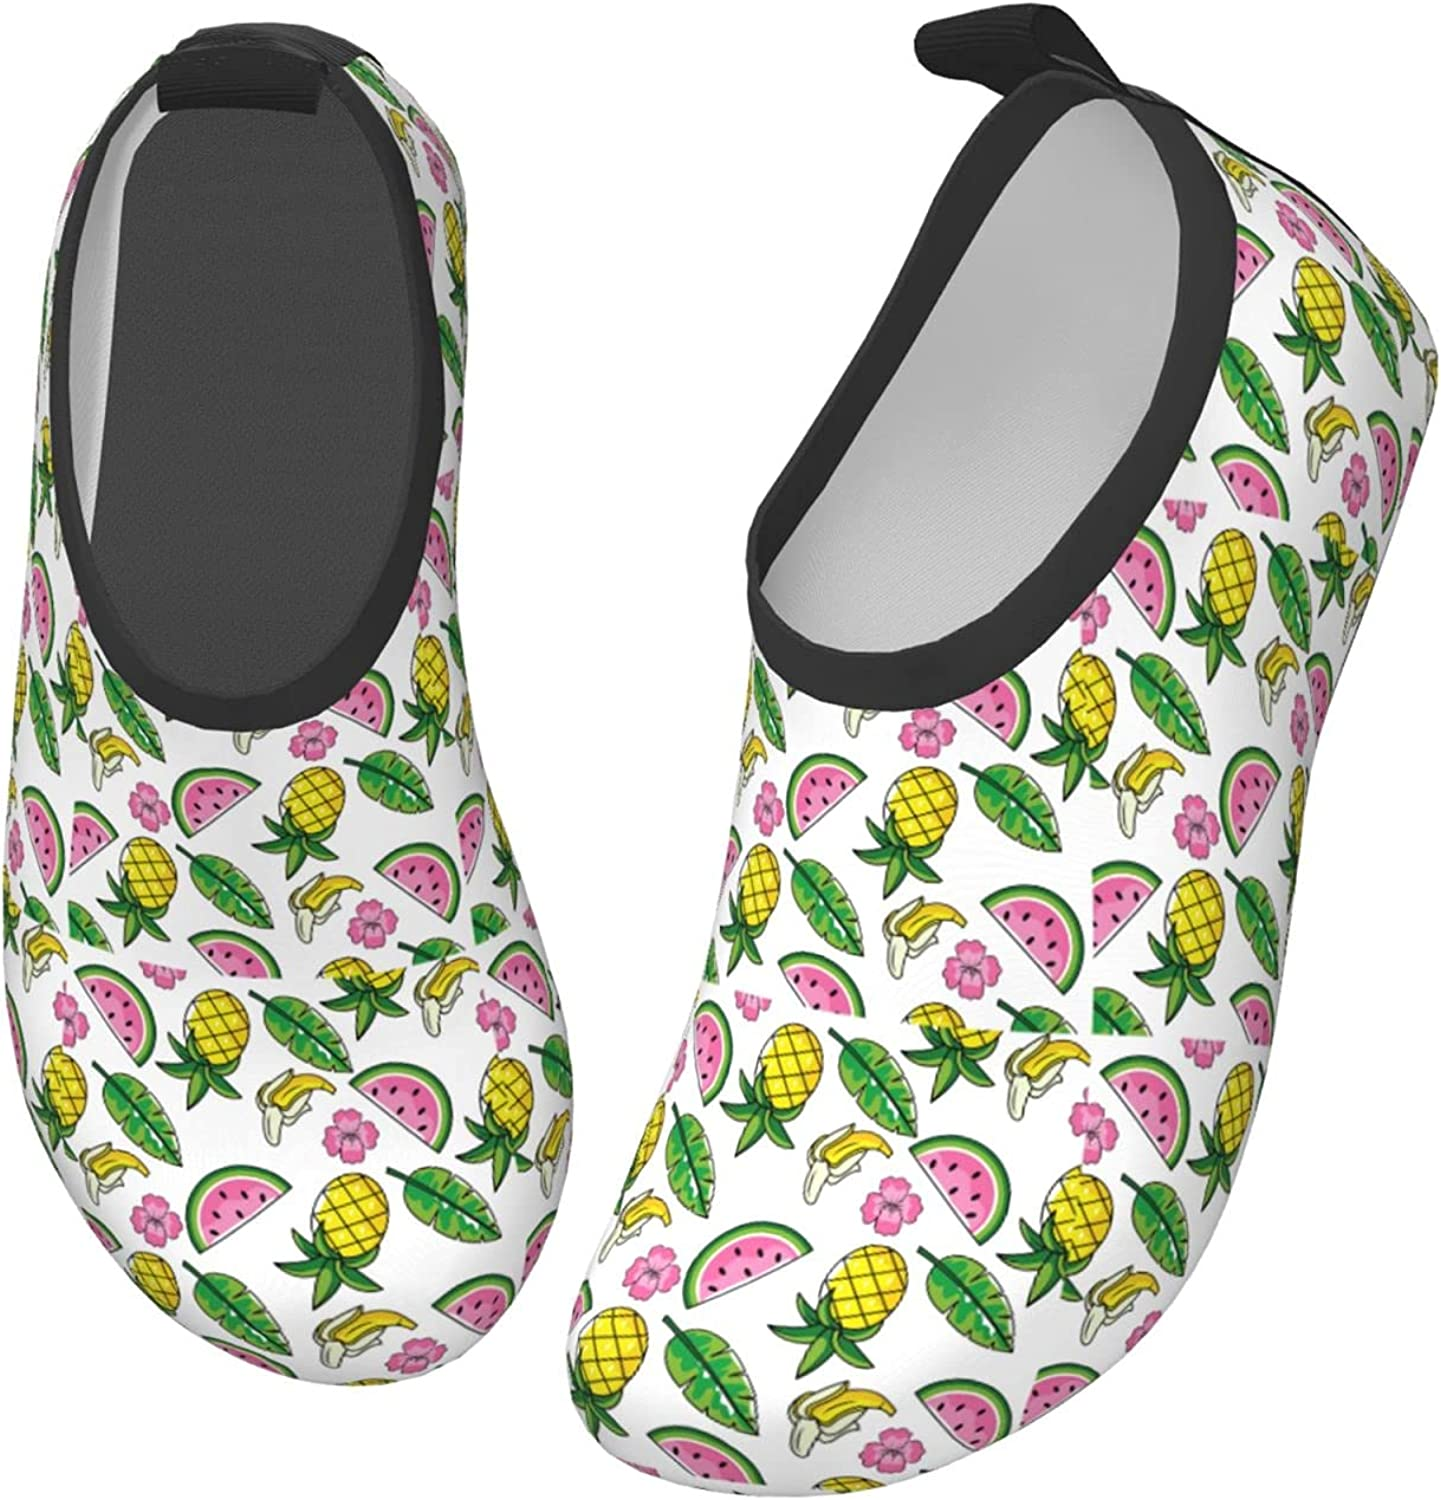 Jedenkuku Melon Watermelon Pink Fruit Tropical Children's Water Shoes Feel Barefoot for Swimming Beach Boating Surfing Yoga